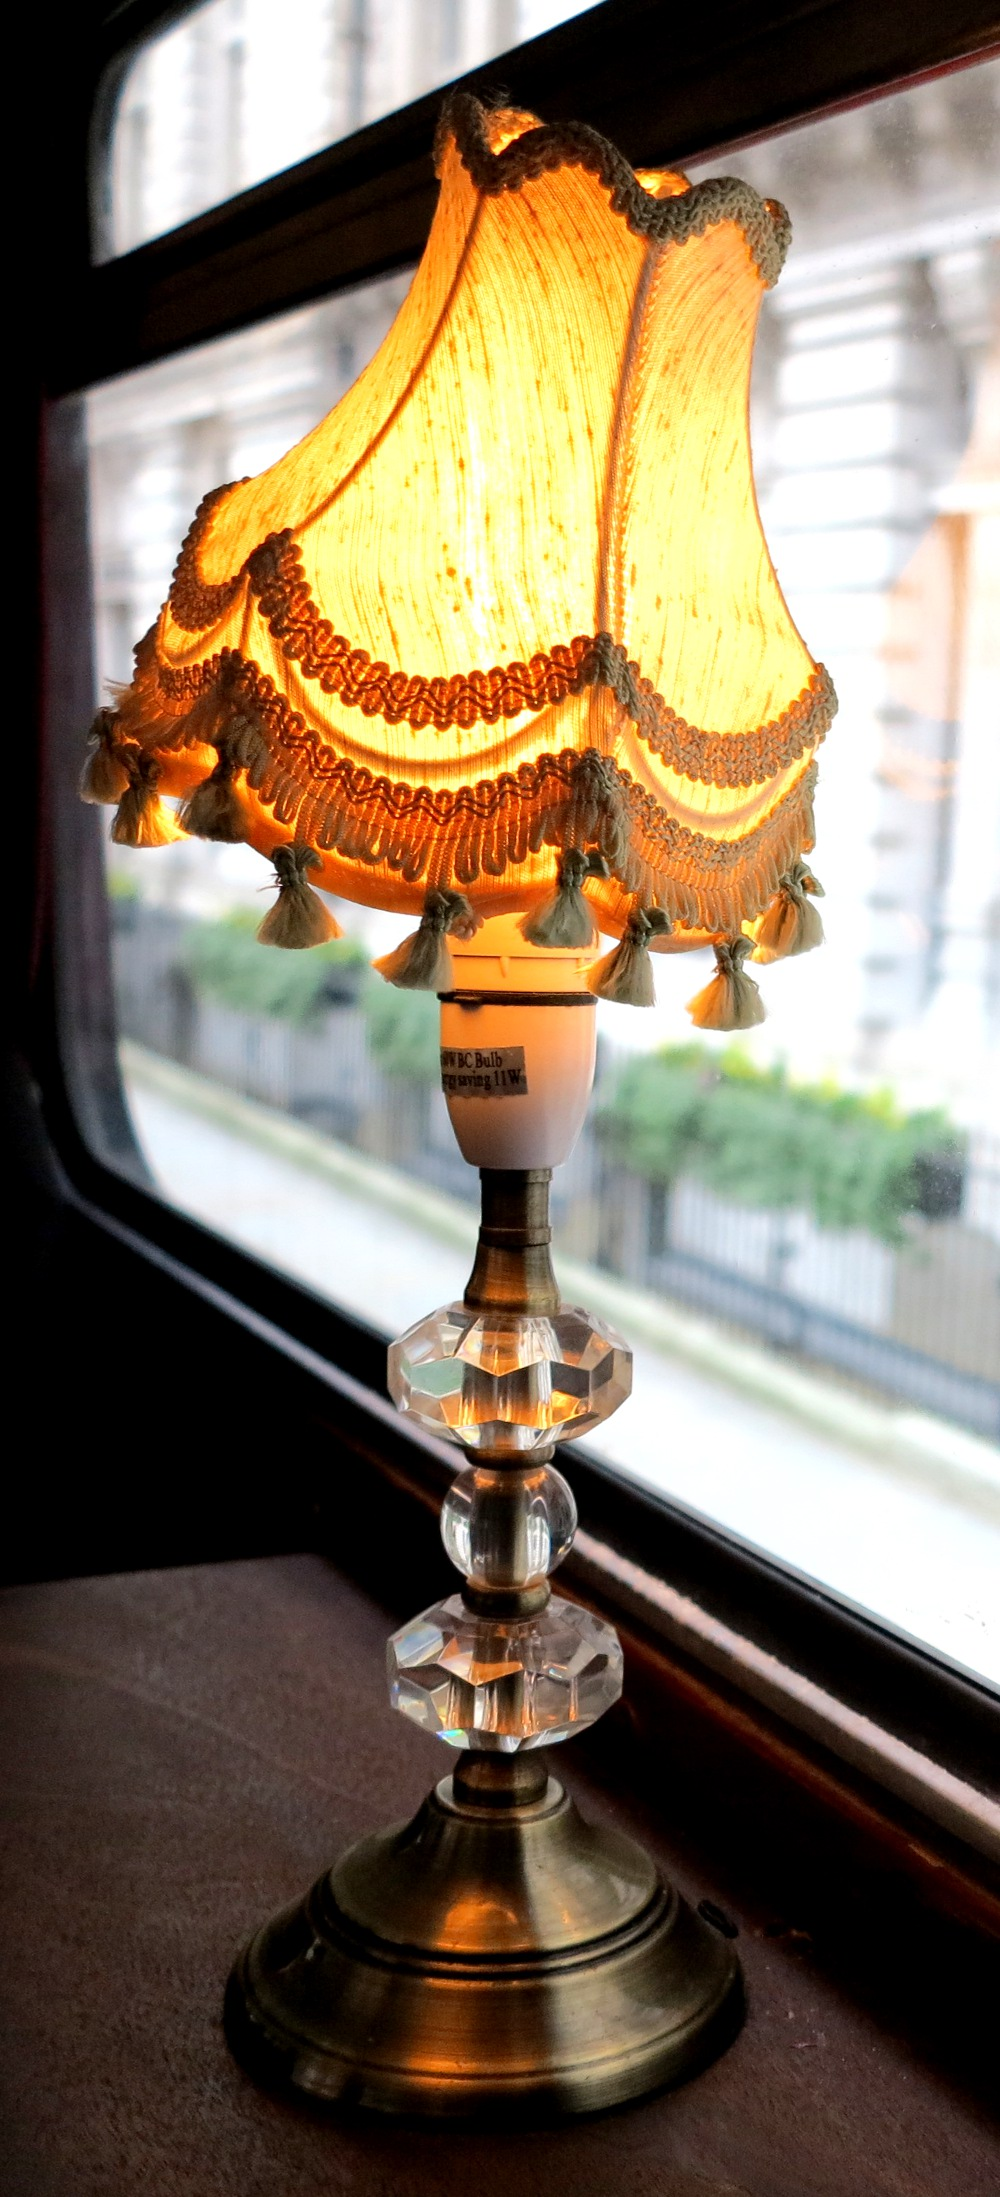 The fancy lamps from the London Time Tour bus